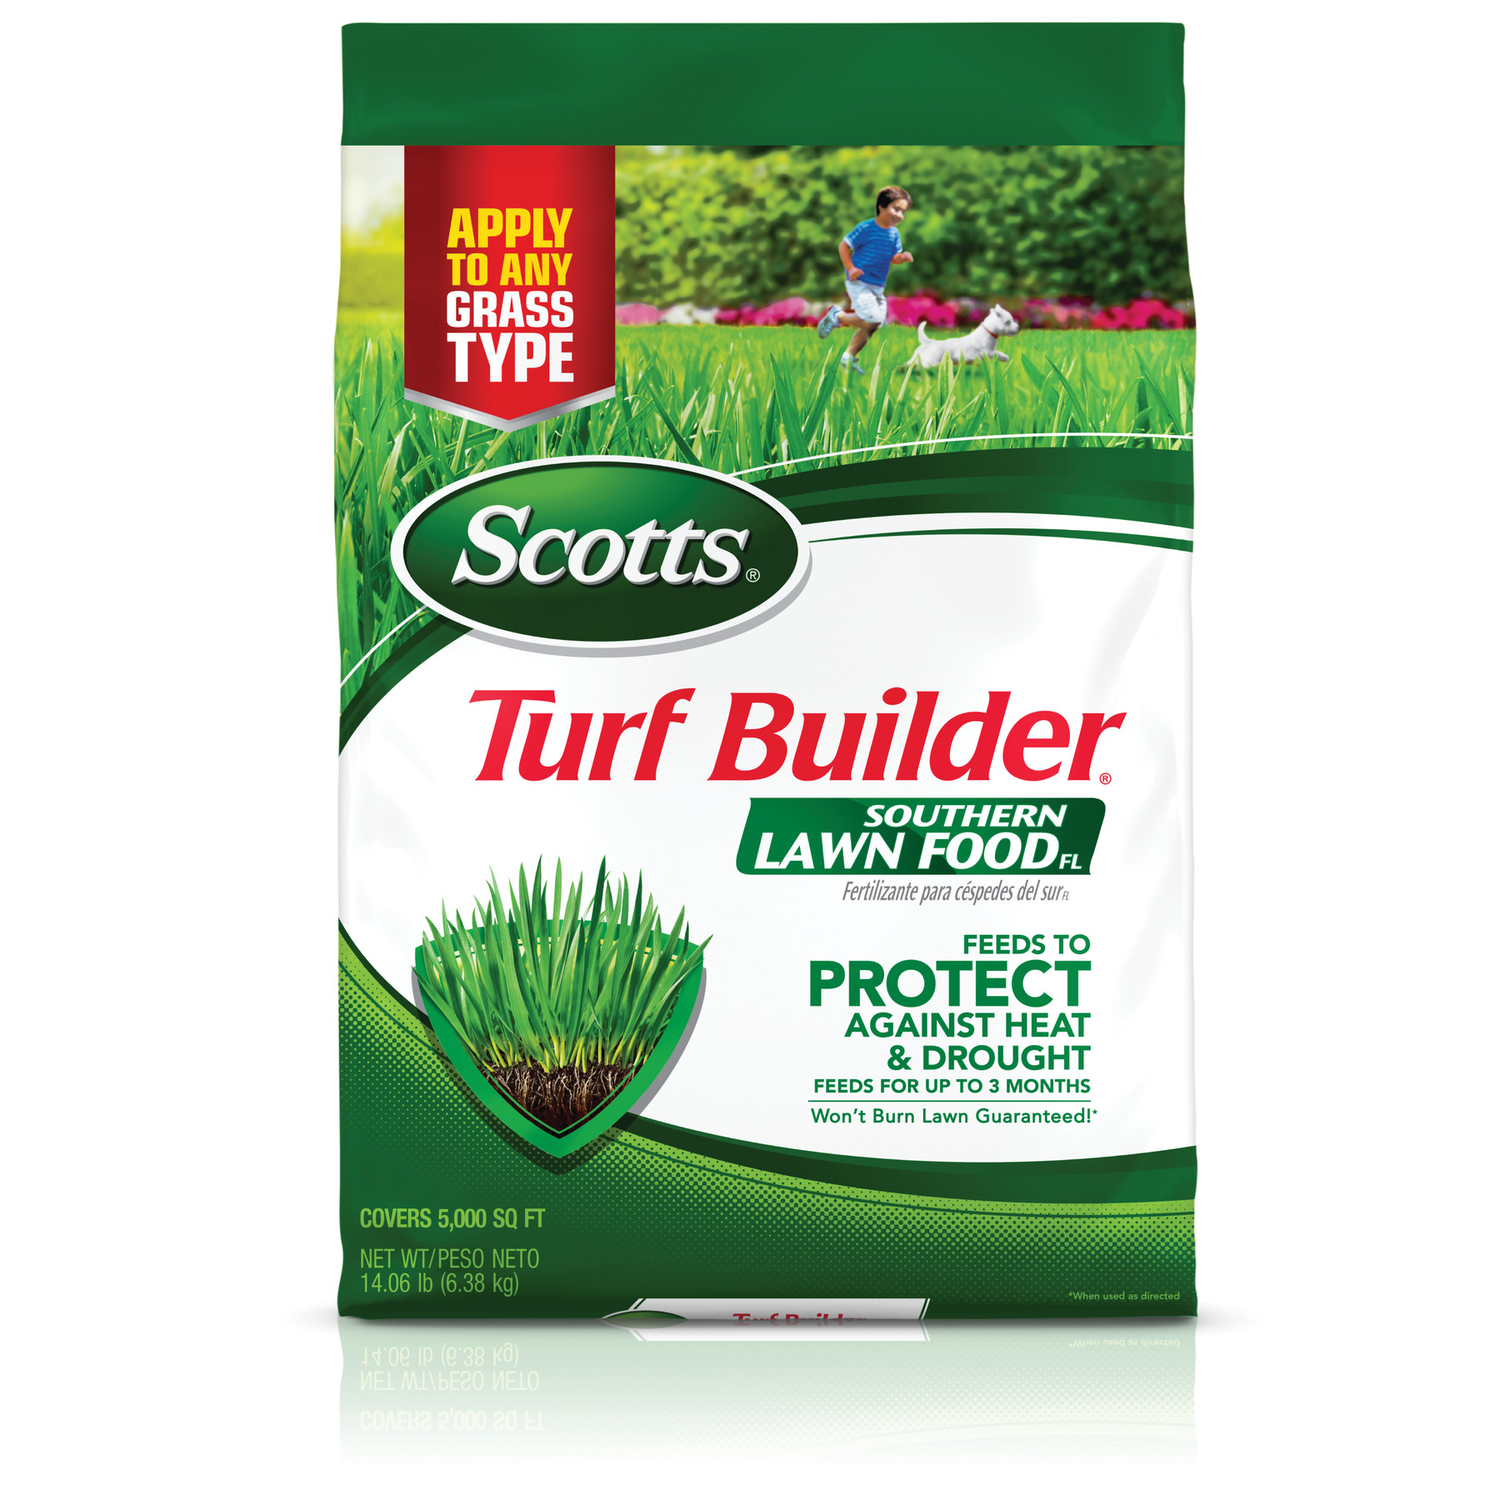 Scotts  Turf Builder  32-0-10  Lawn Food  For All Florida Grasses